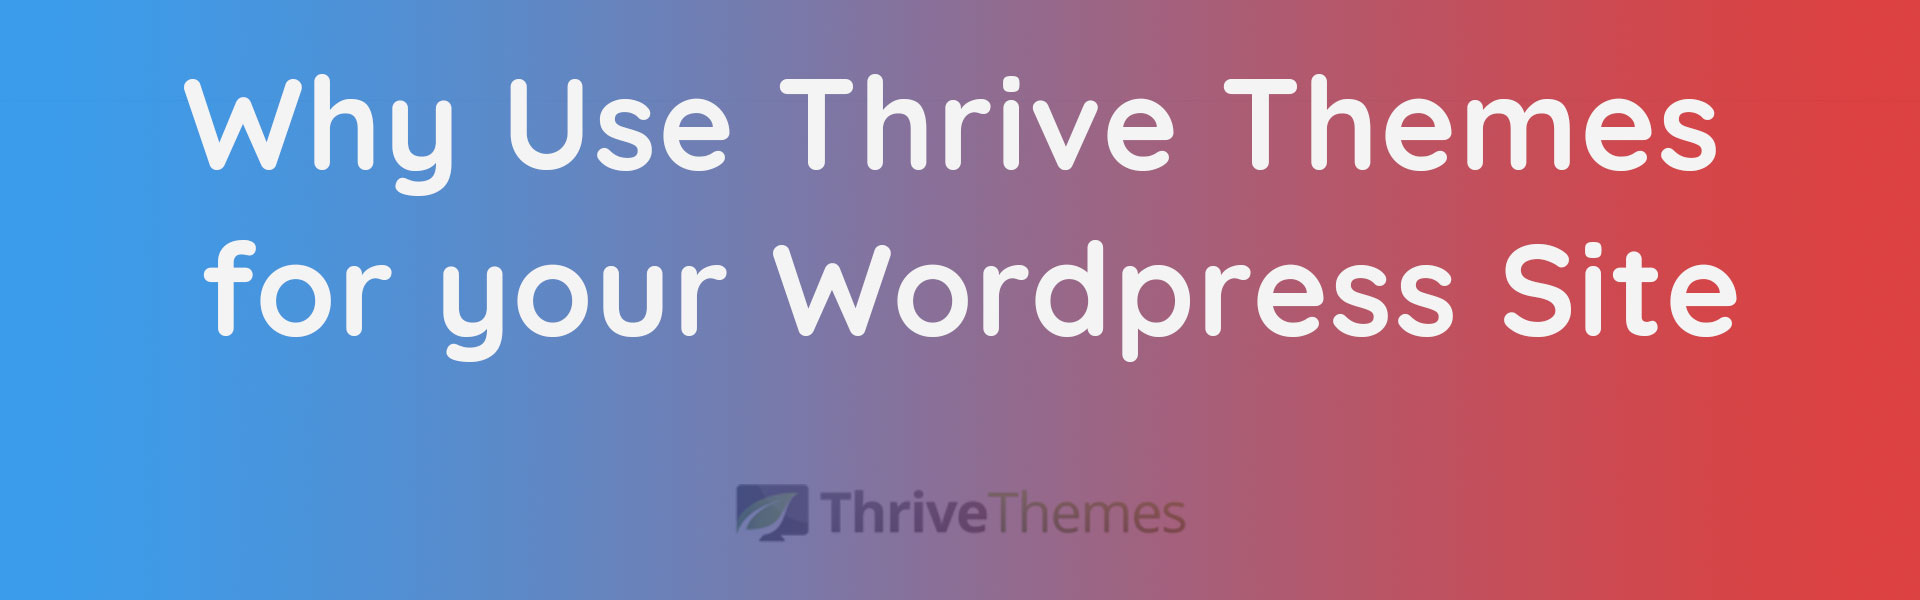 Giveaway No Human Verification  WordPress Themes Thrive Themes